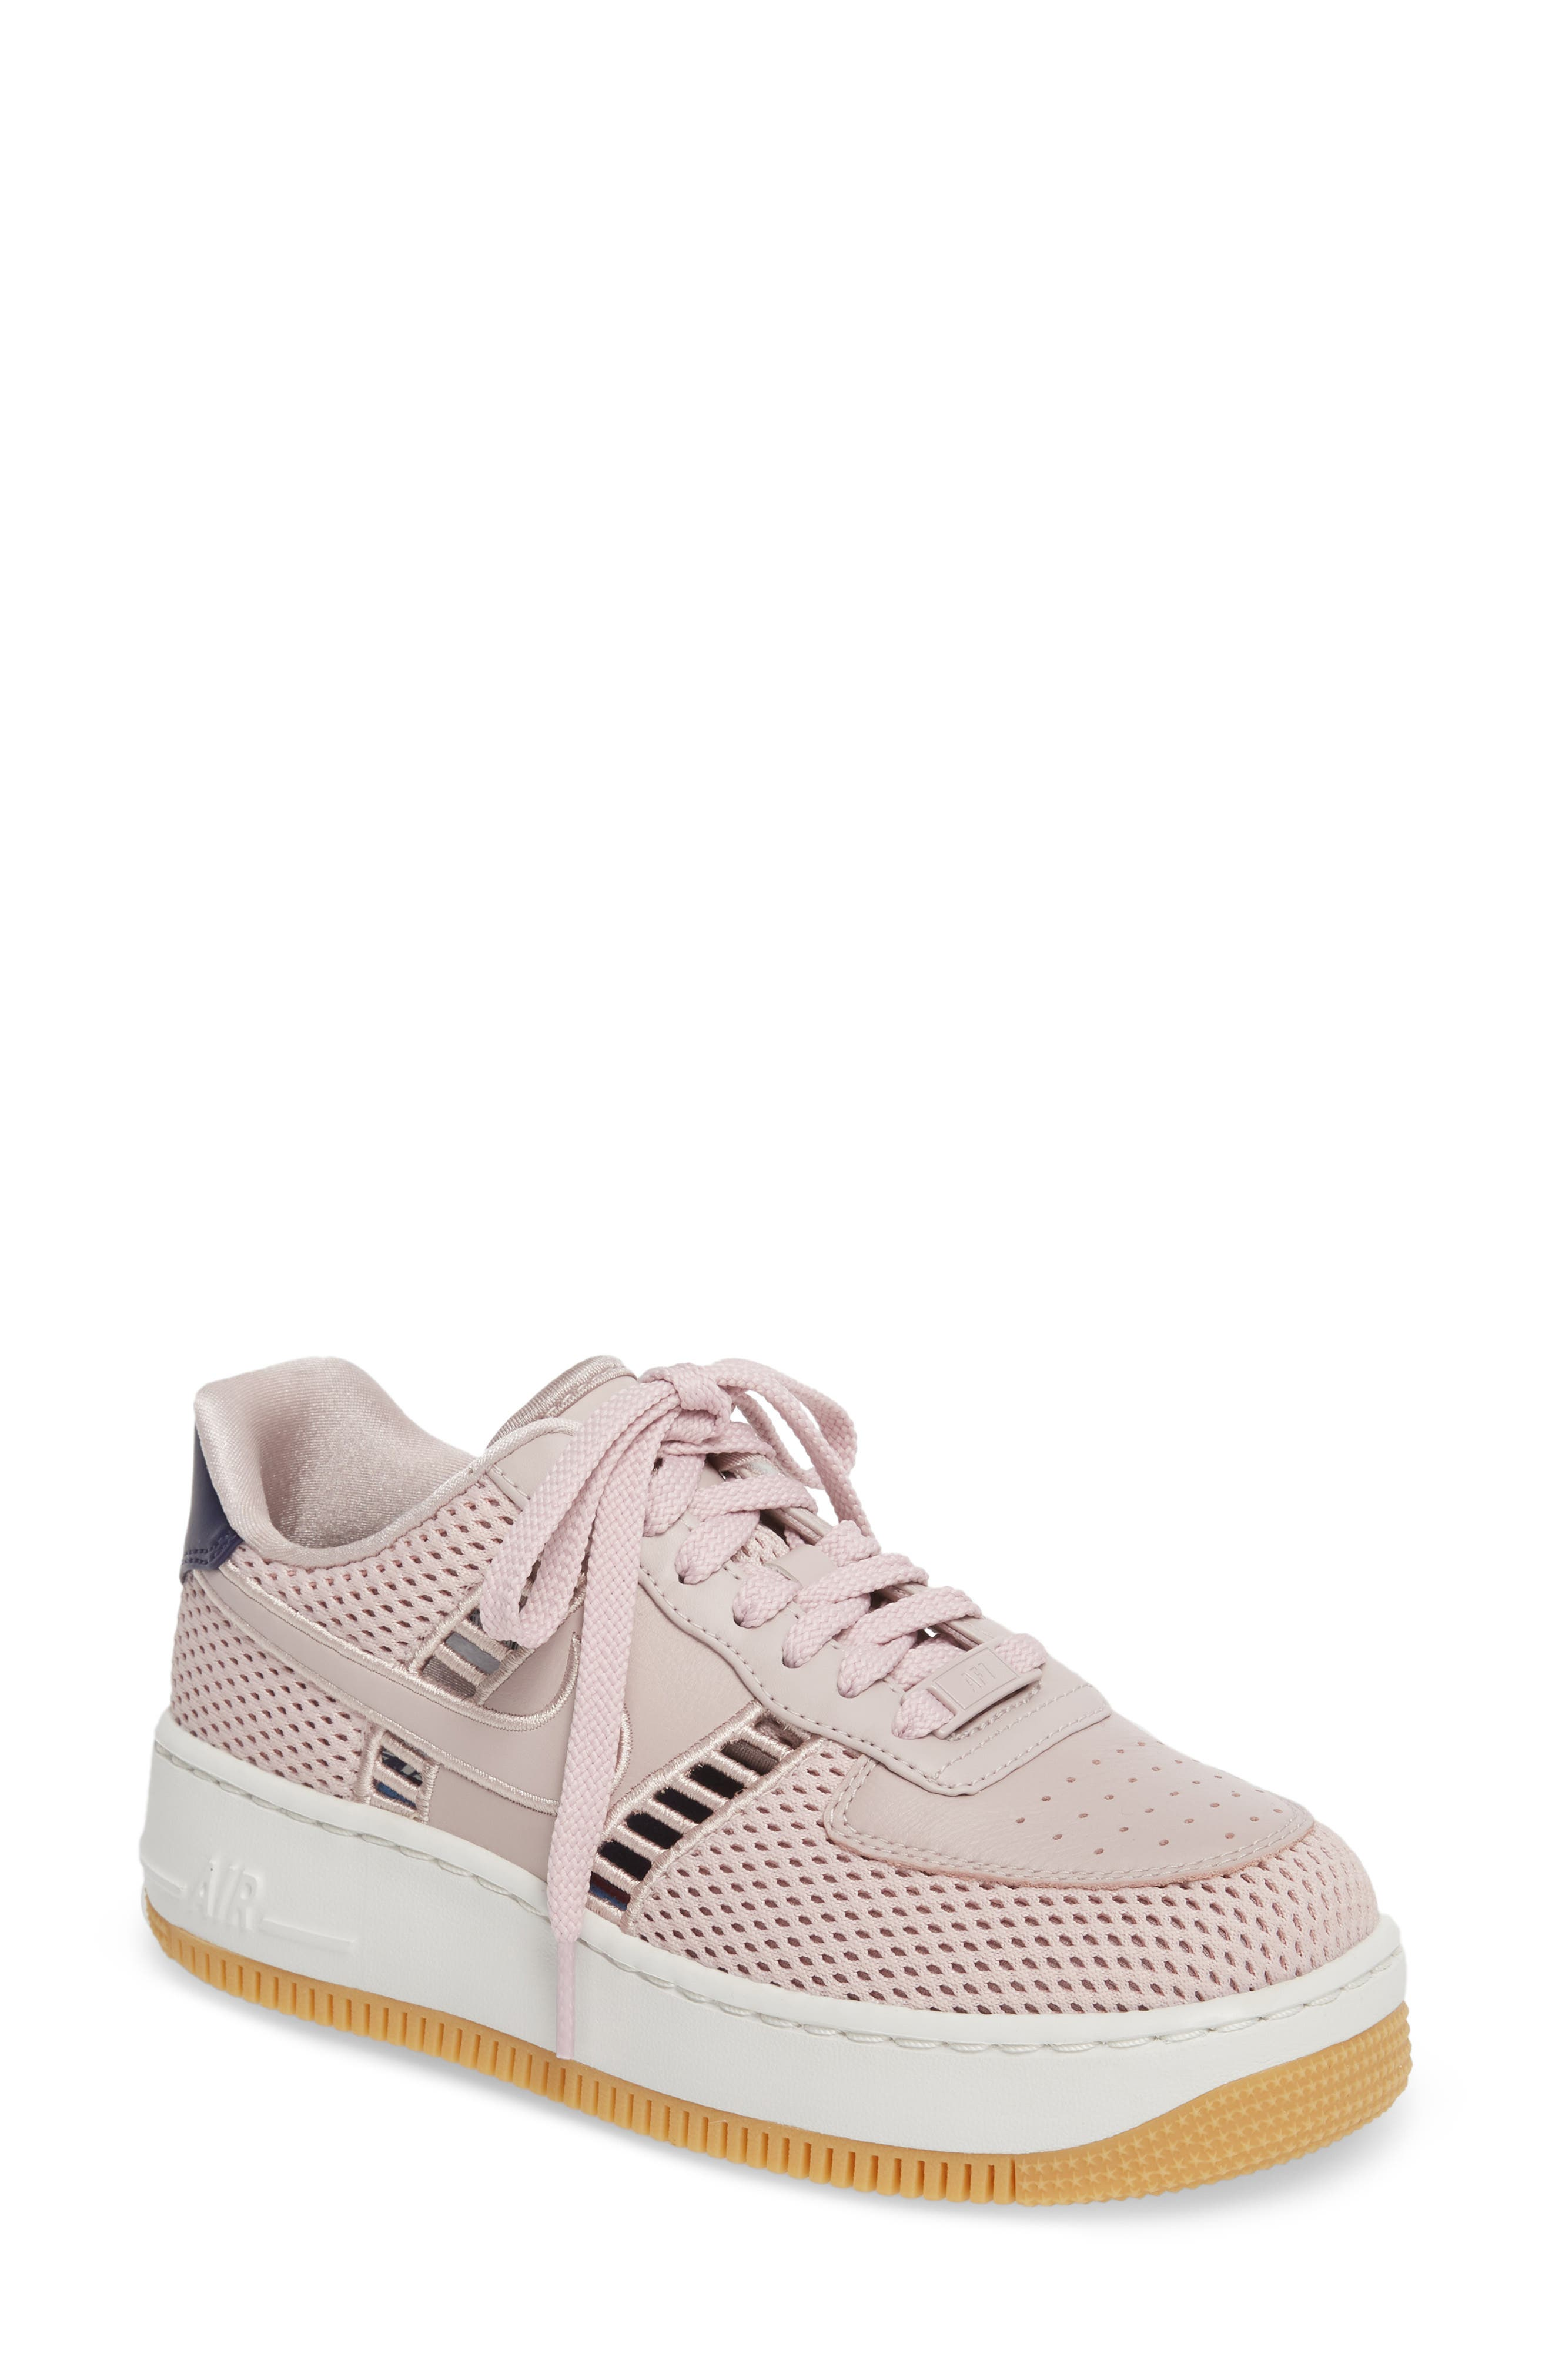 Shop the latest selection of Women's adidas at Foot Locker. Find the hottest sneaker drops from brands like Jordan, Nike, Under Armour, New Balance, and a bunch more. Free shipping on select products.